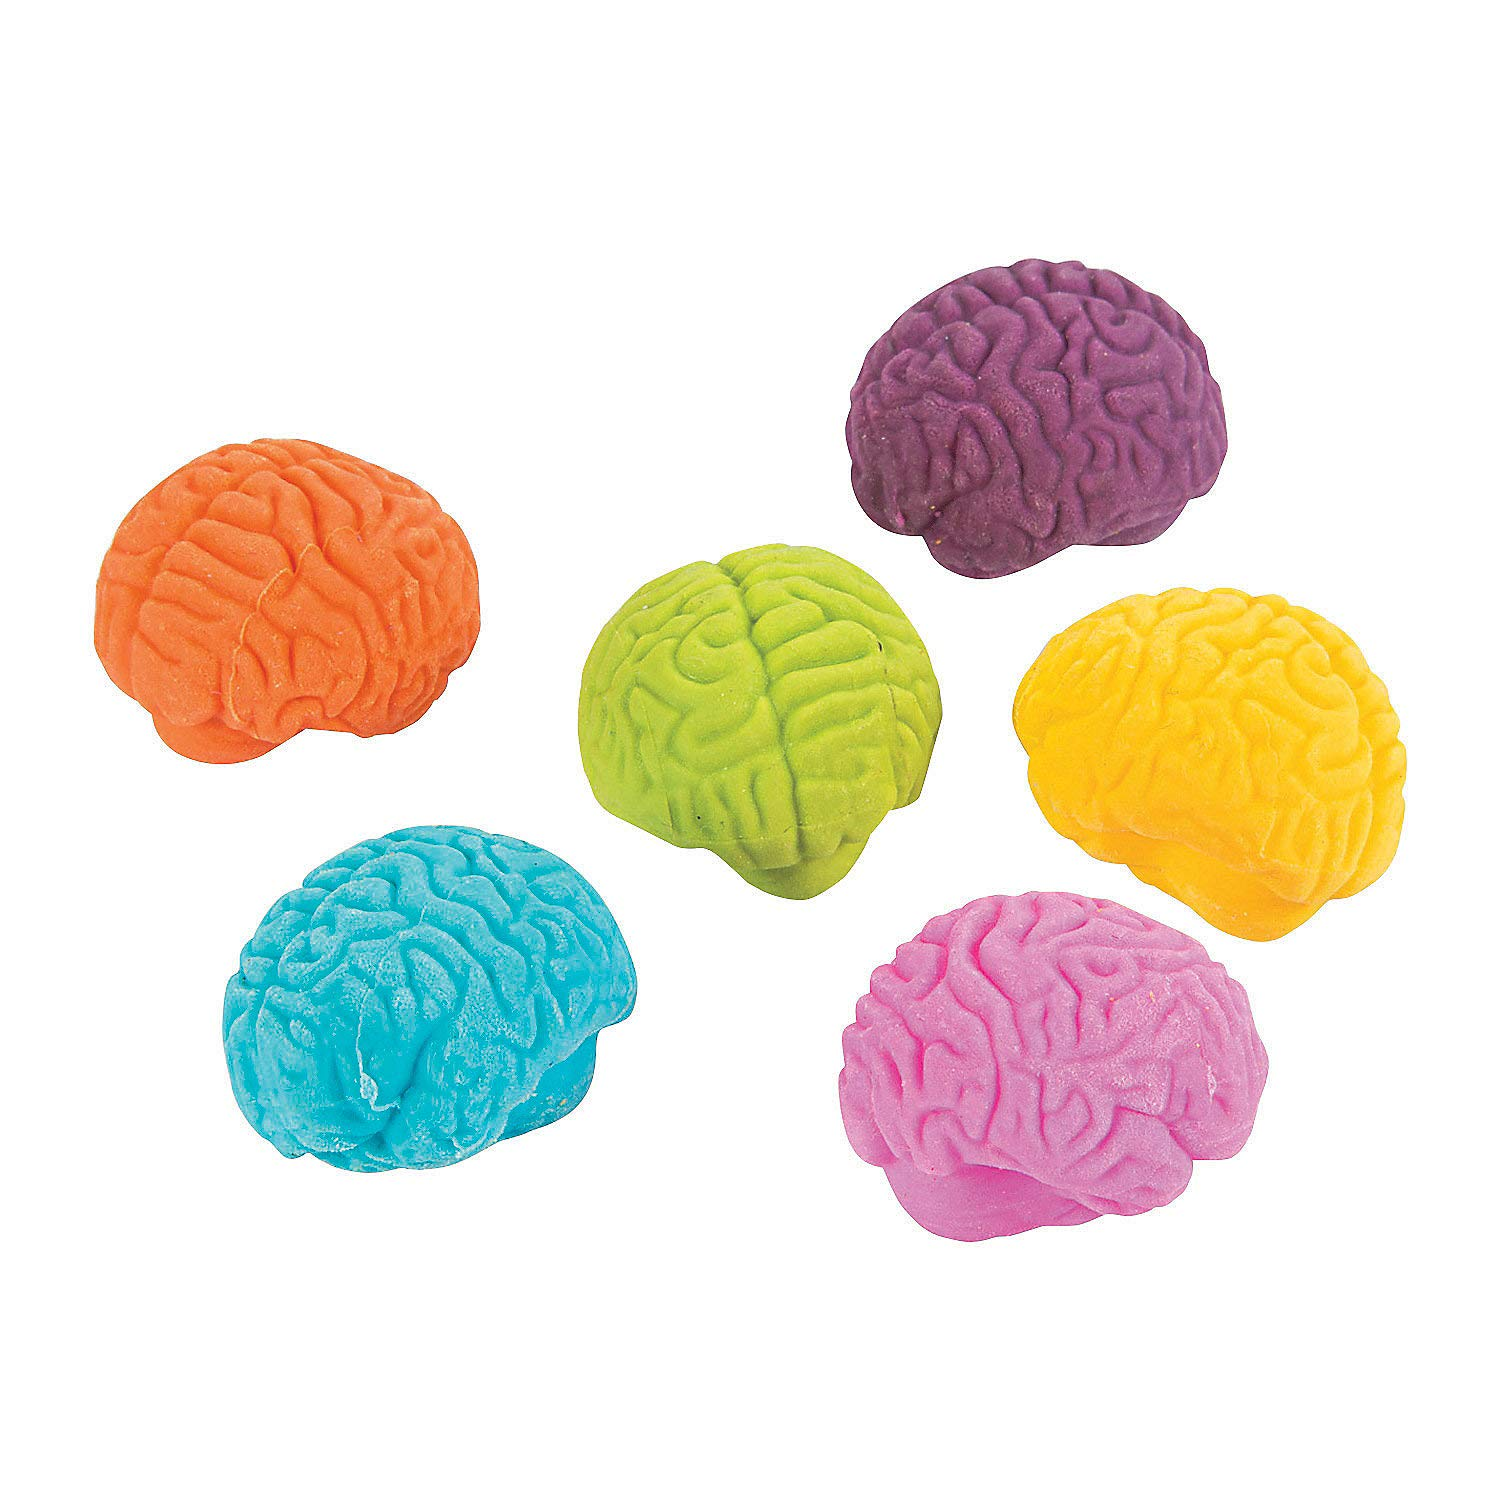 Fun Express Rubber Brain-Shaped Erasers | 24 Count | Great for Themed Birthday Parties, Halloween Trick-or-Treating, School or Classroom, Prizes & Favors by Fun Express